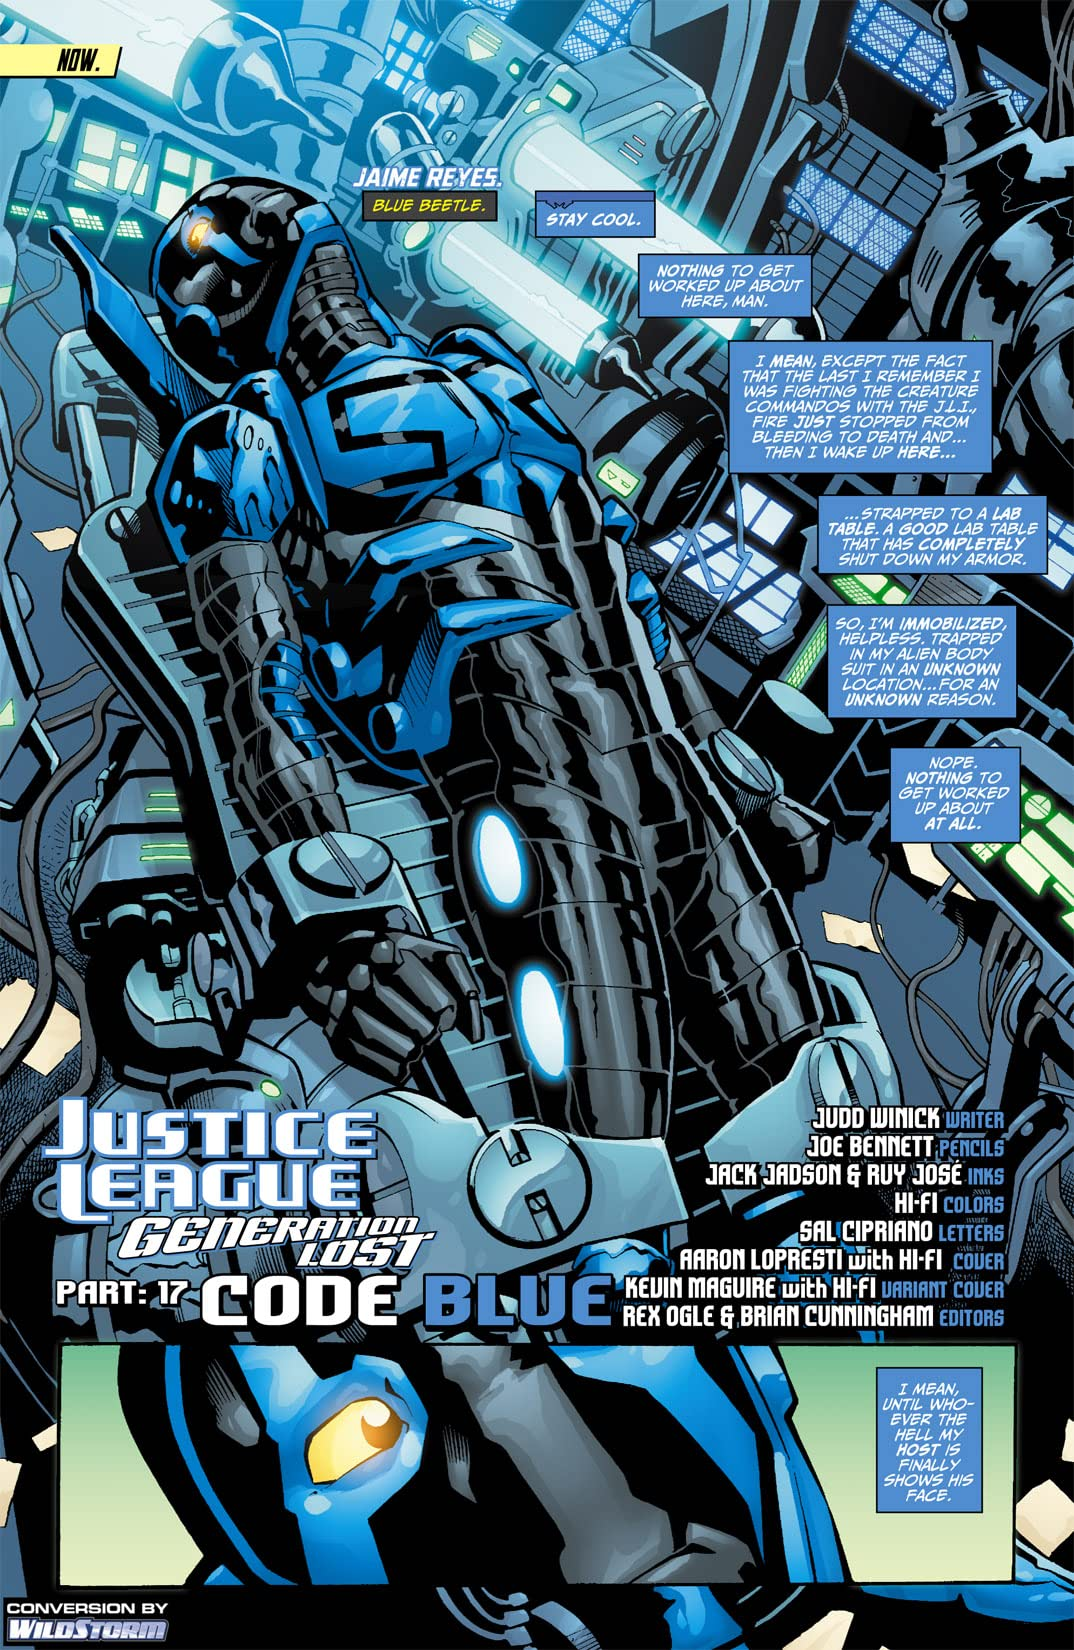 Justice League: Generation Lost #17